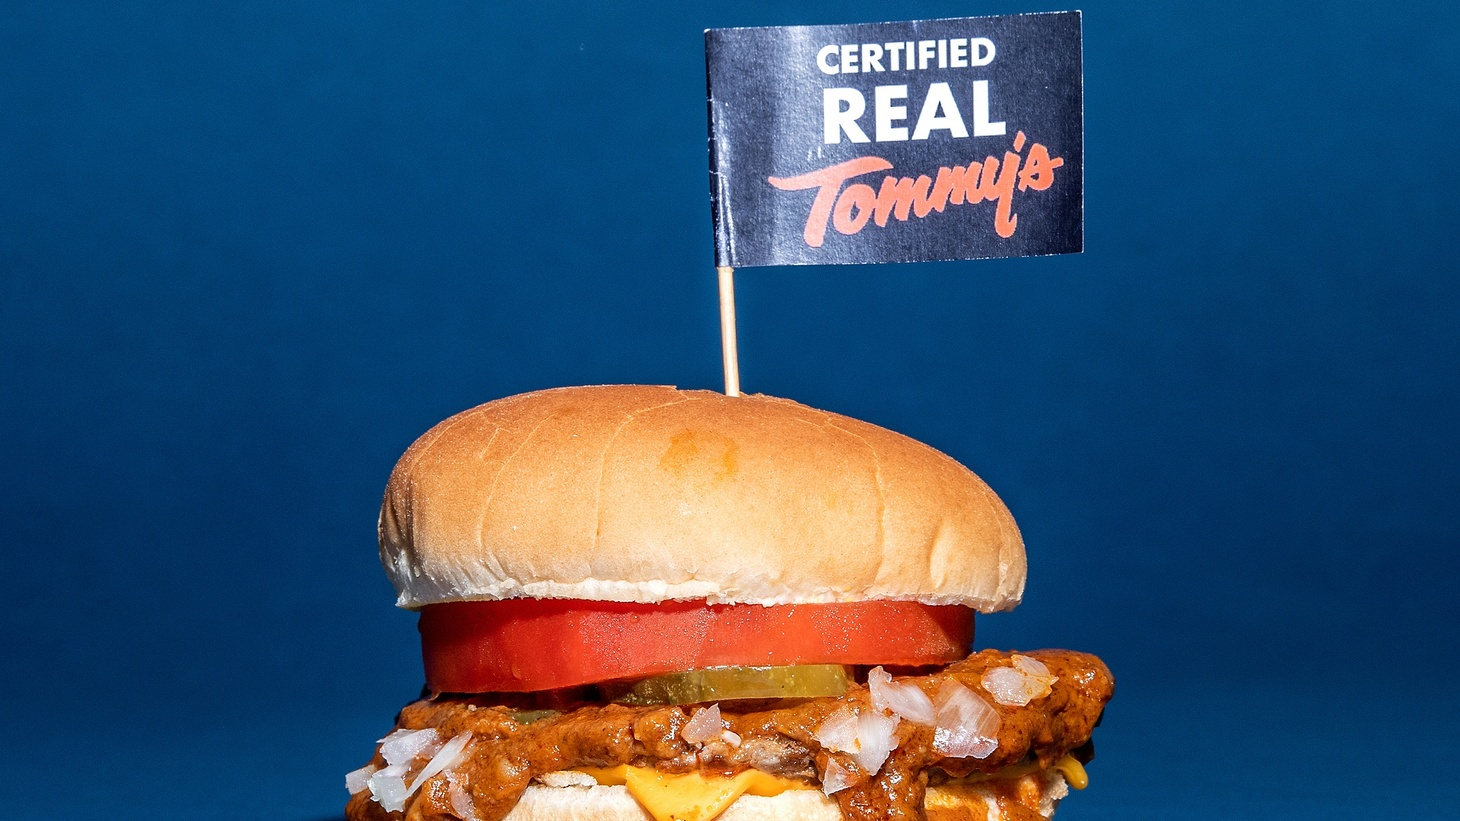 LA Times business reporter Daniel Miller took on the challenge of looking into Original Tommy's chiliburger knockoffs and how they came to spawn all over the city.